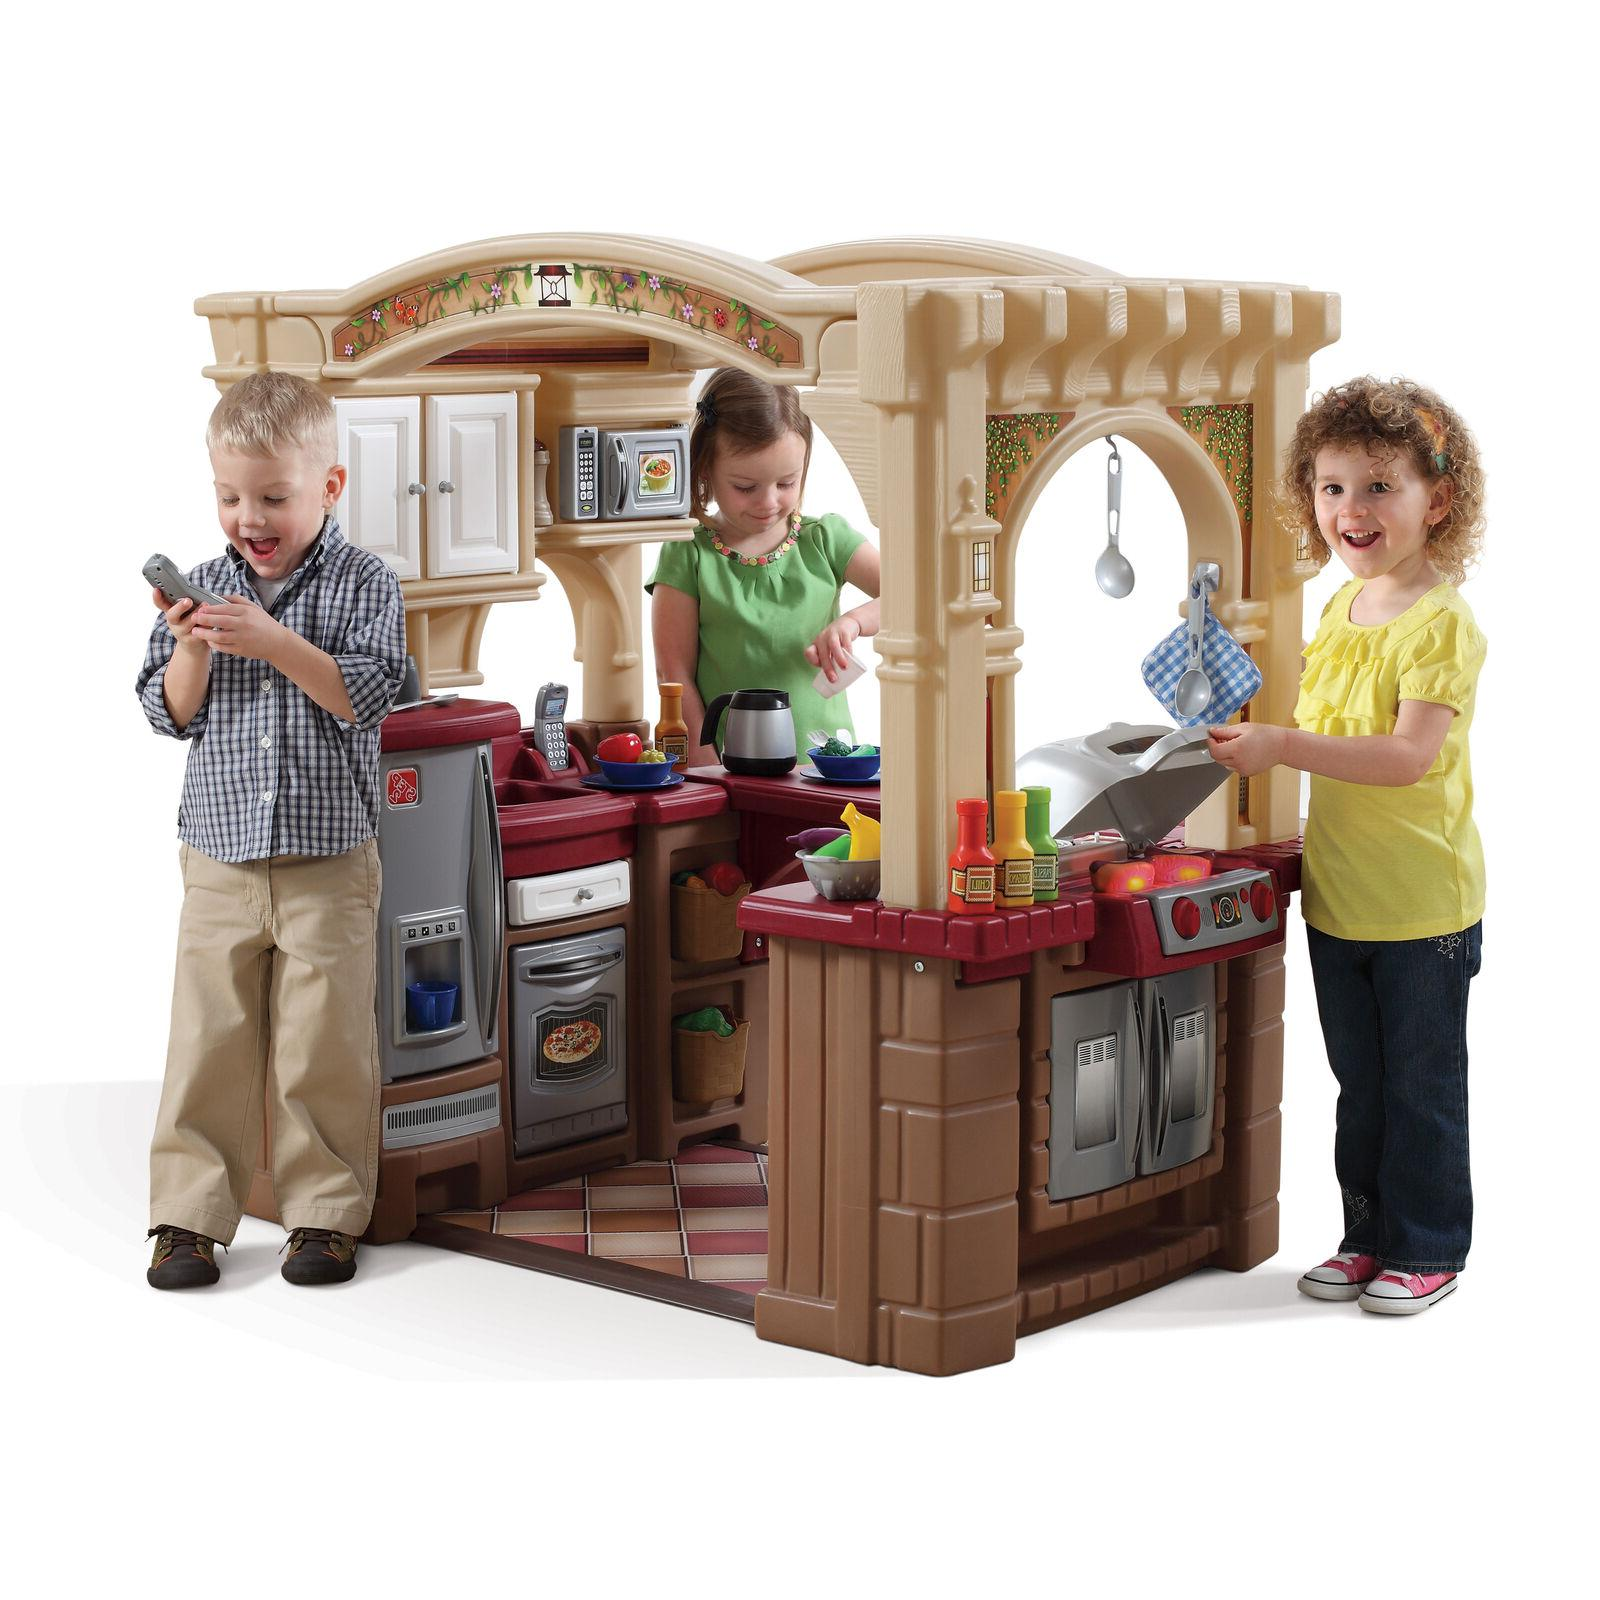 Walk Play Toy for Toddler Small Child Pretend Playhouse